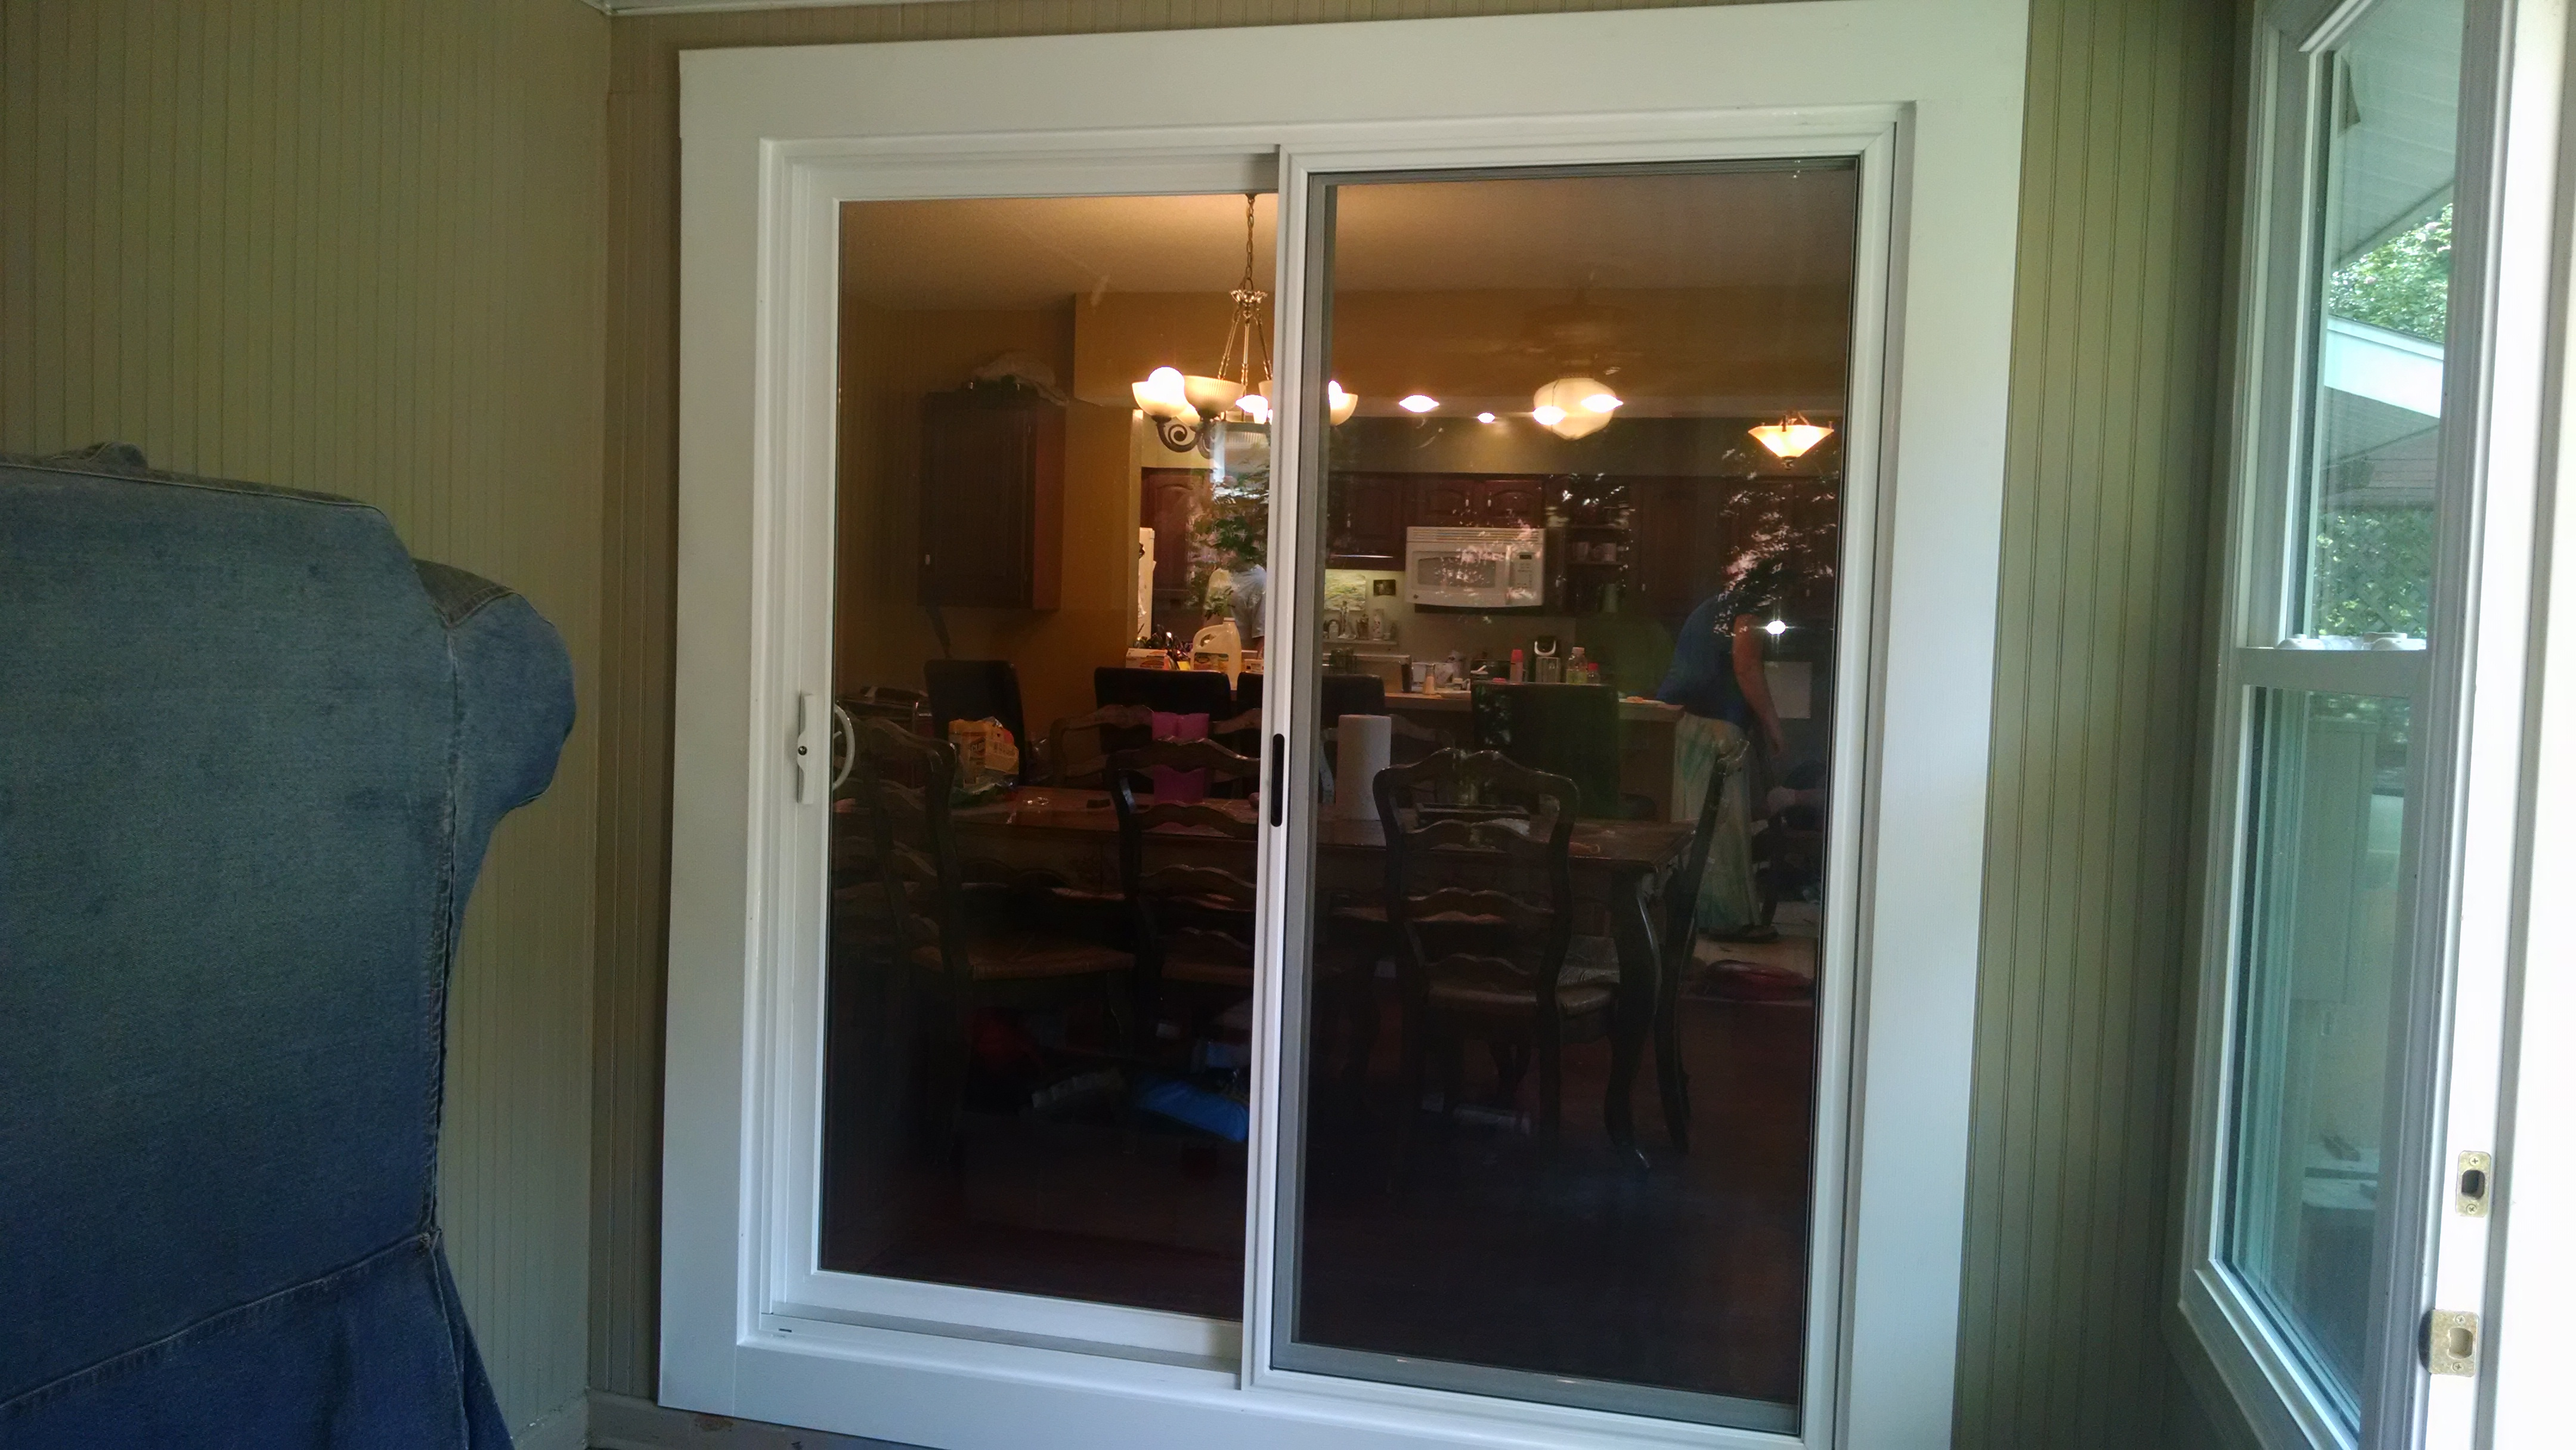 how sliding full replace assembly on glass patio of adjust replacement size to a rollers afterpartyclub parts doors window roller swing door